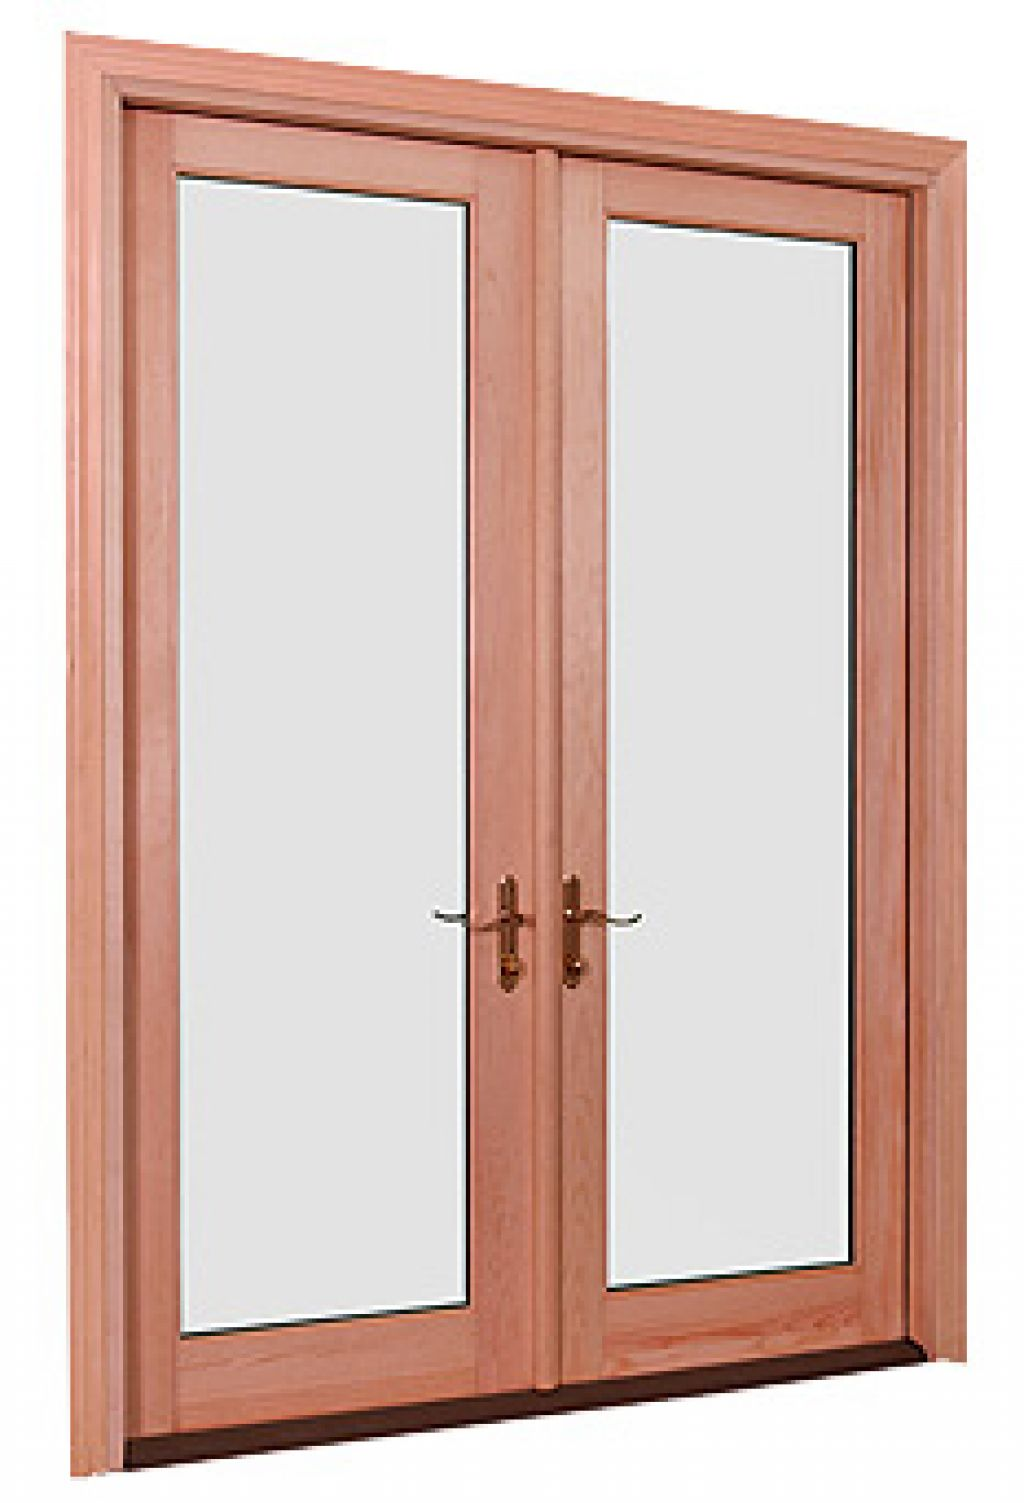 20 reasons to install french doors exterior andersen for Interior exterior doors